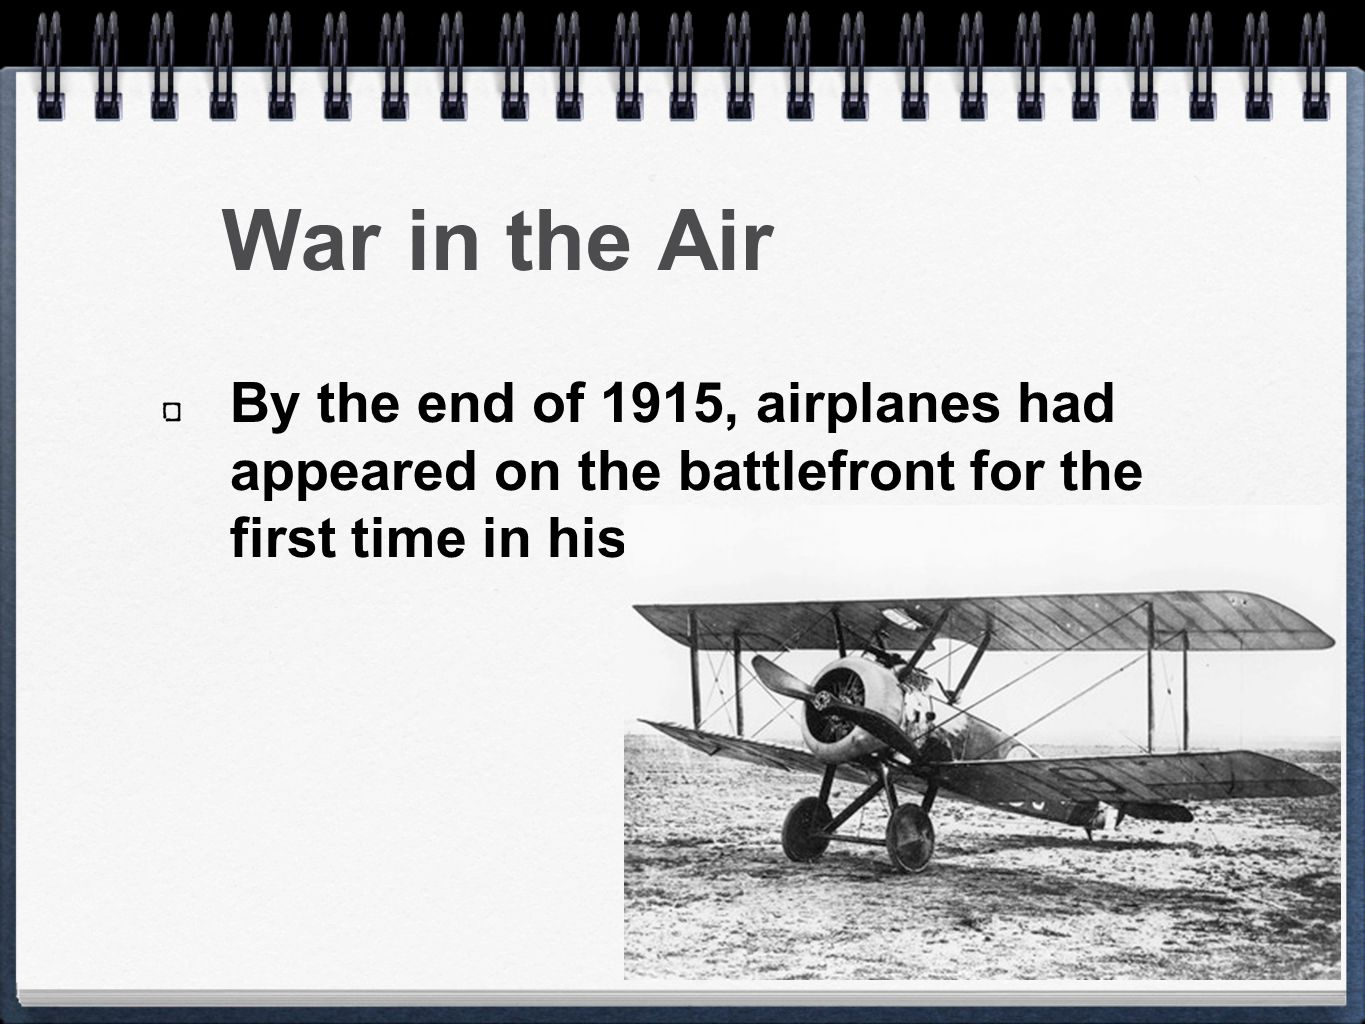 War in the Air By the end of 1915, airplanes had appeared on the battlefront for the first time in history.